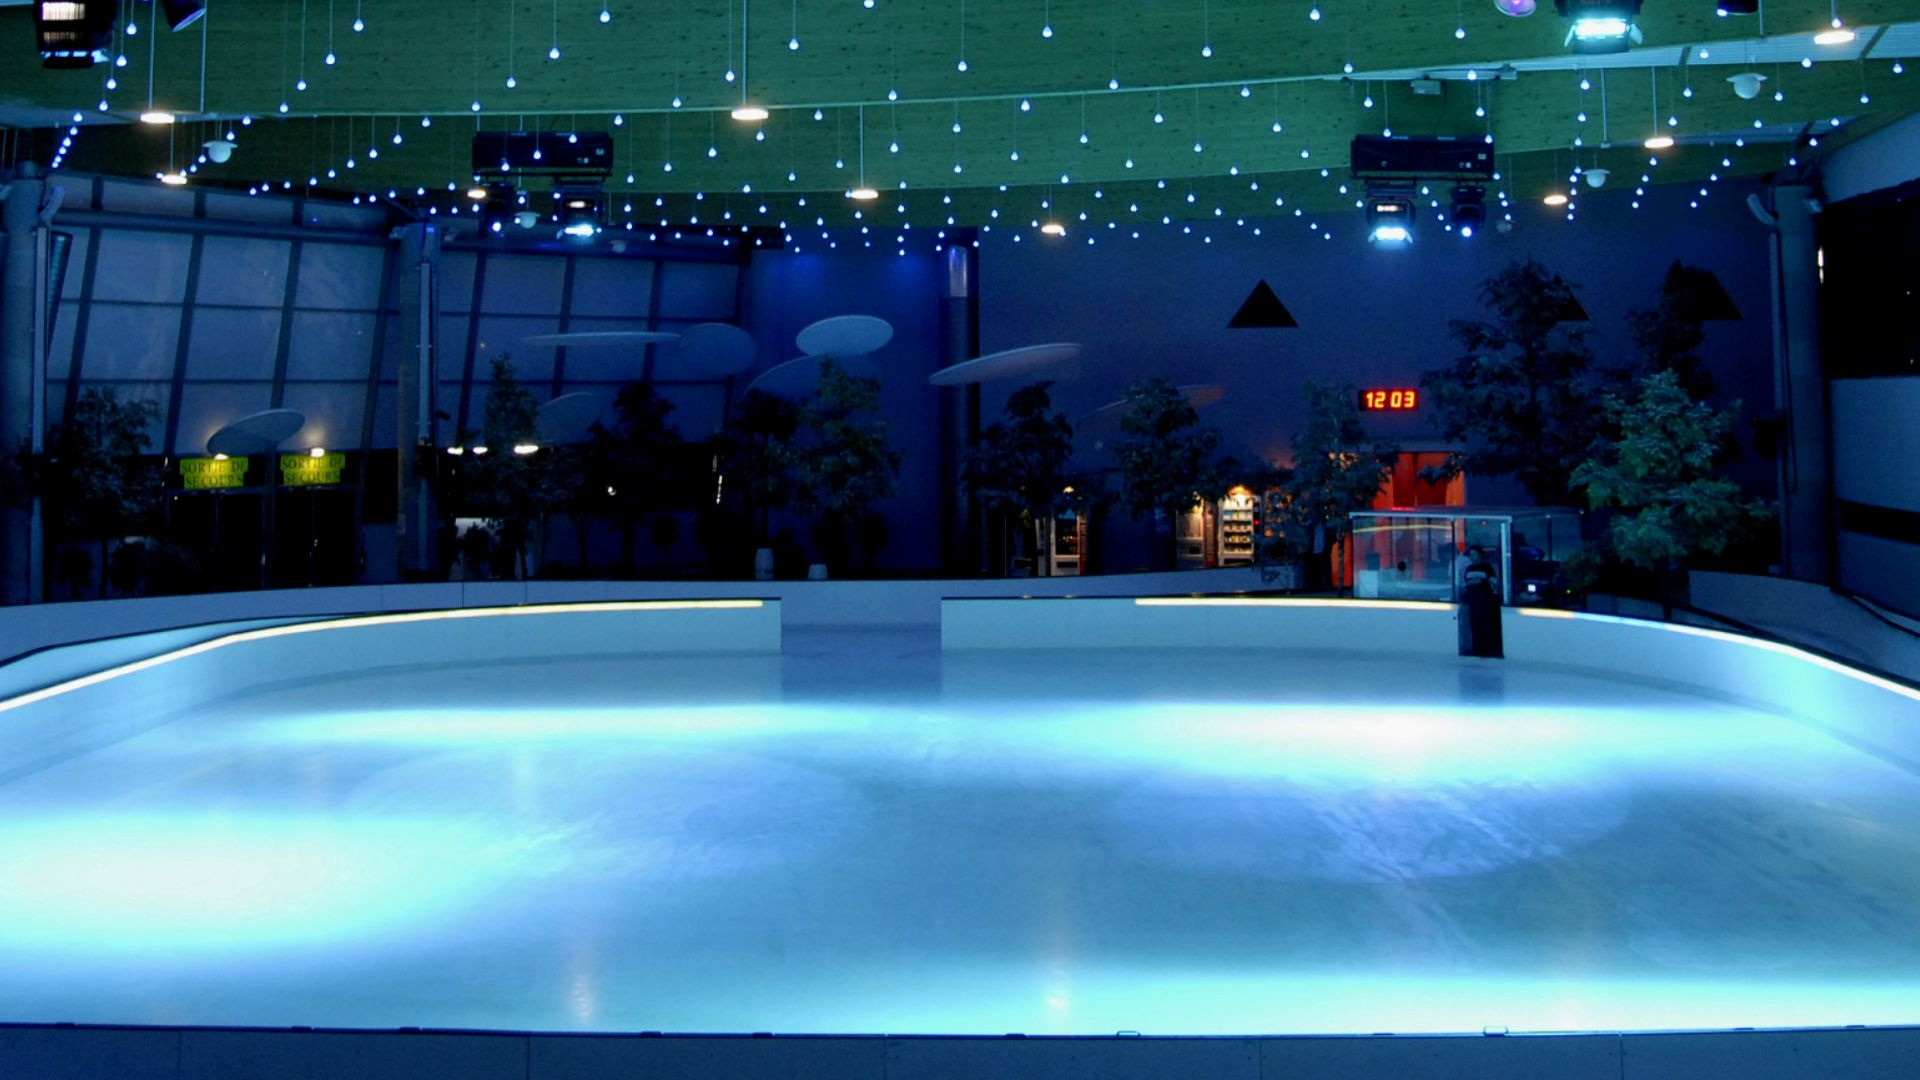 Patinage boulogne najeti h tel ch teau cl ry for Piscine patinoire